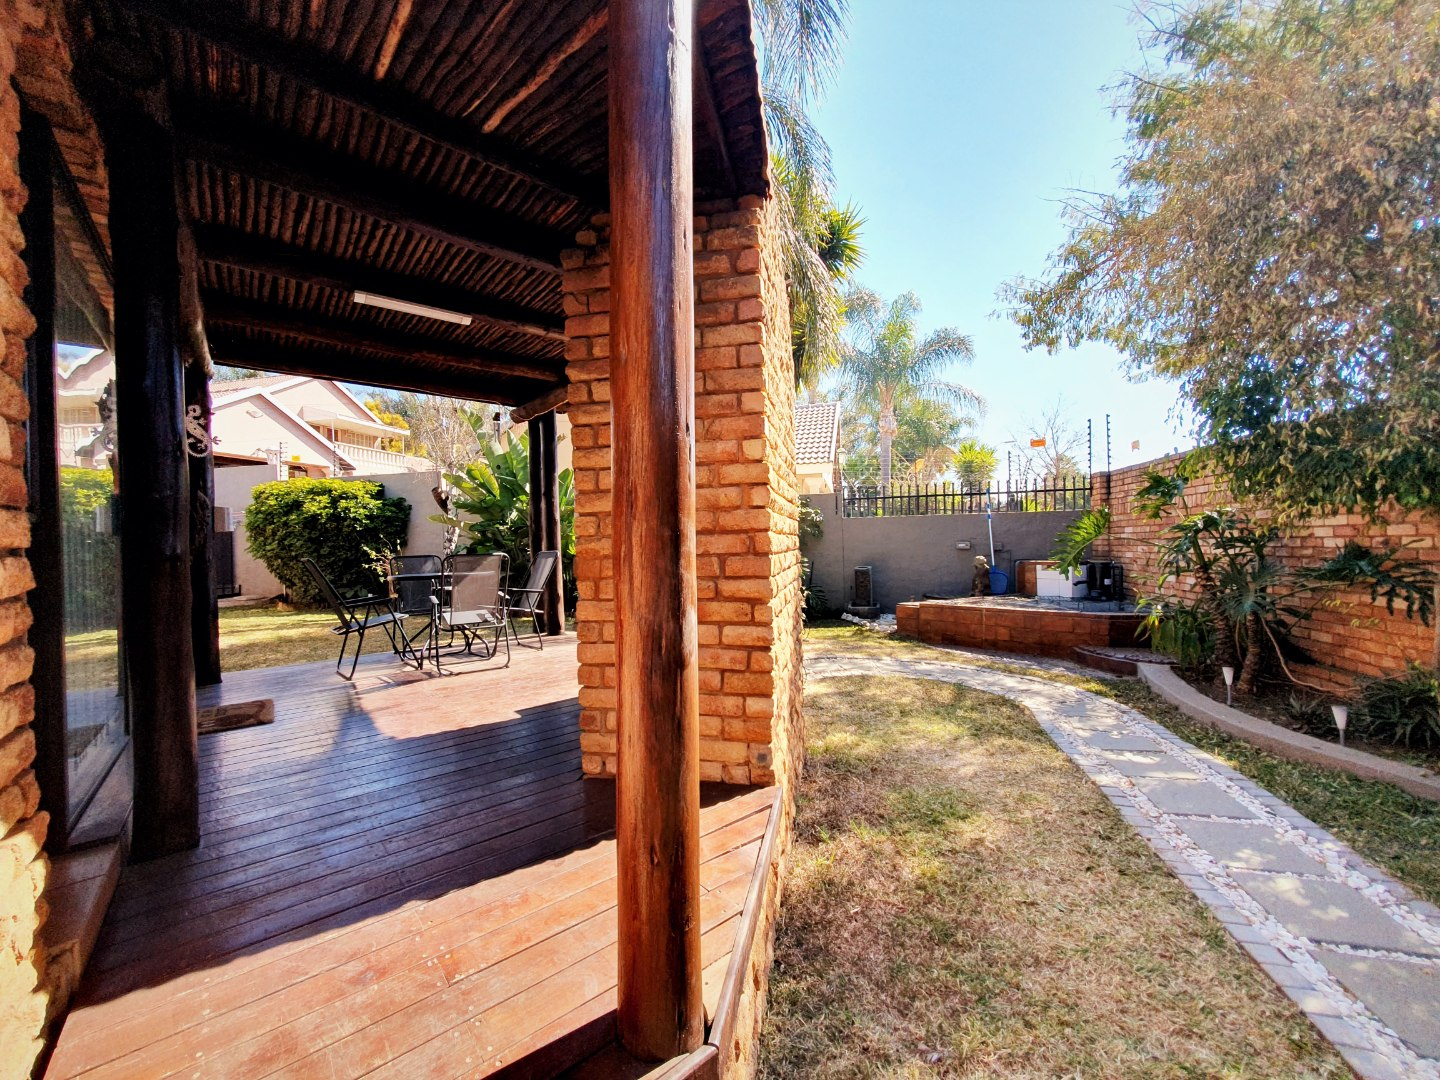 3 Bedroom House For Sale in Moreleta Park